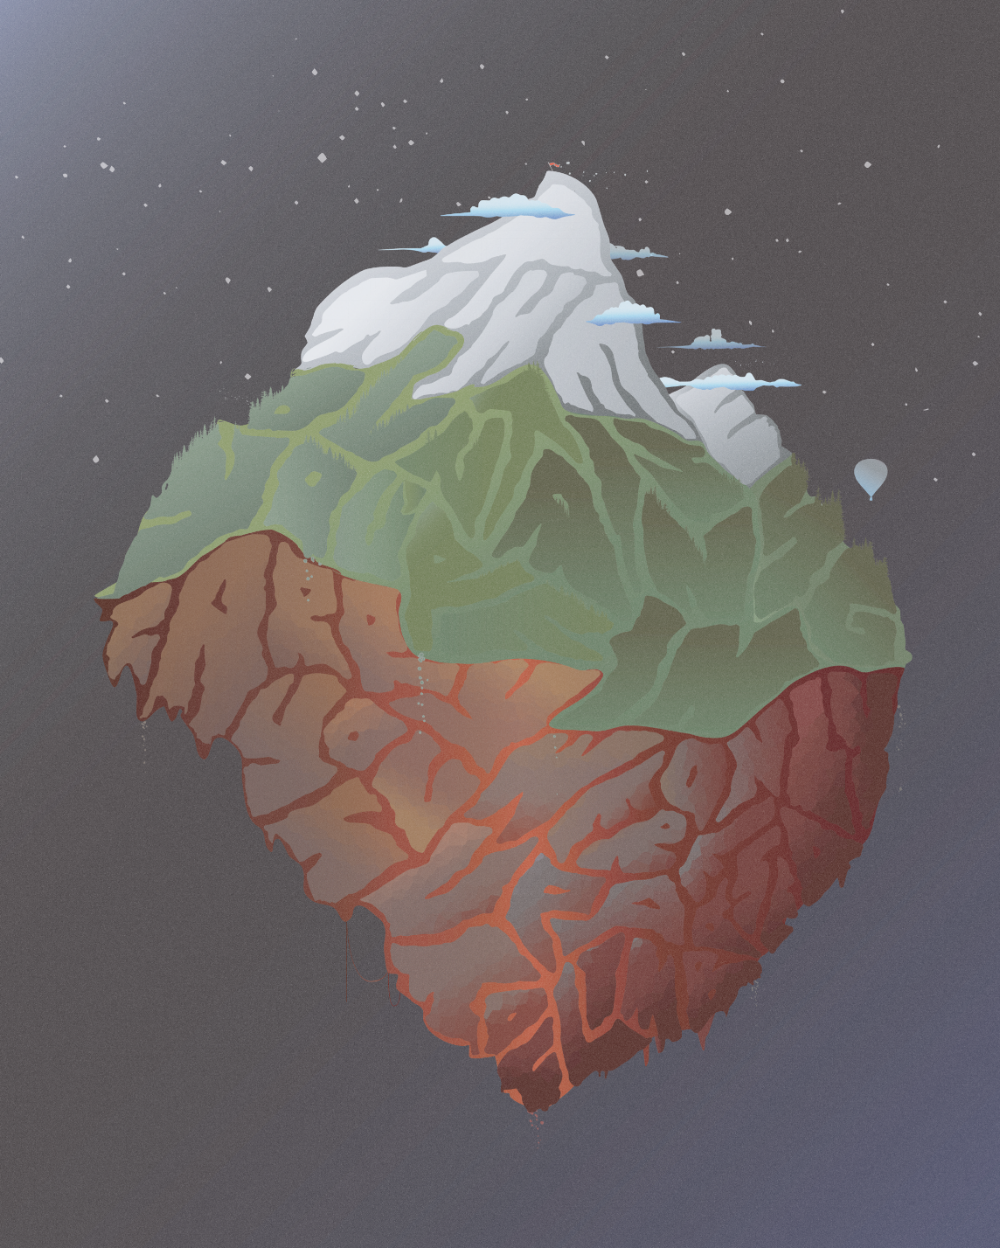 """'These Mountains' by TEKSTartist. Created by warping/twisting the words from the quote: """"These mountains you're carrying you were only supposed to climb"""""""